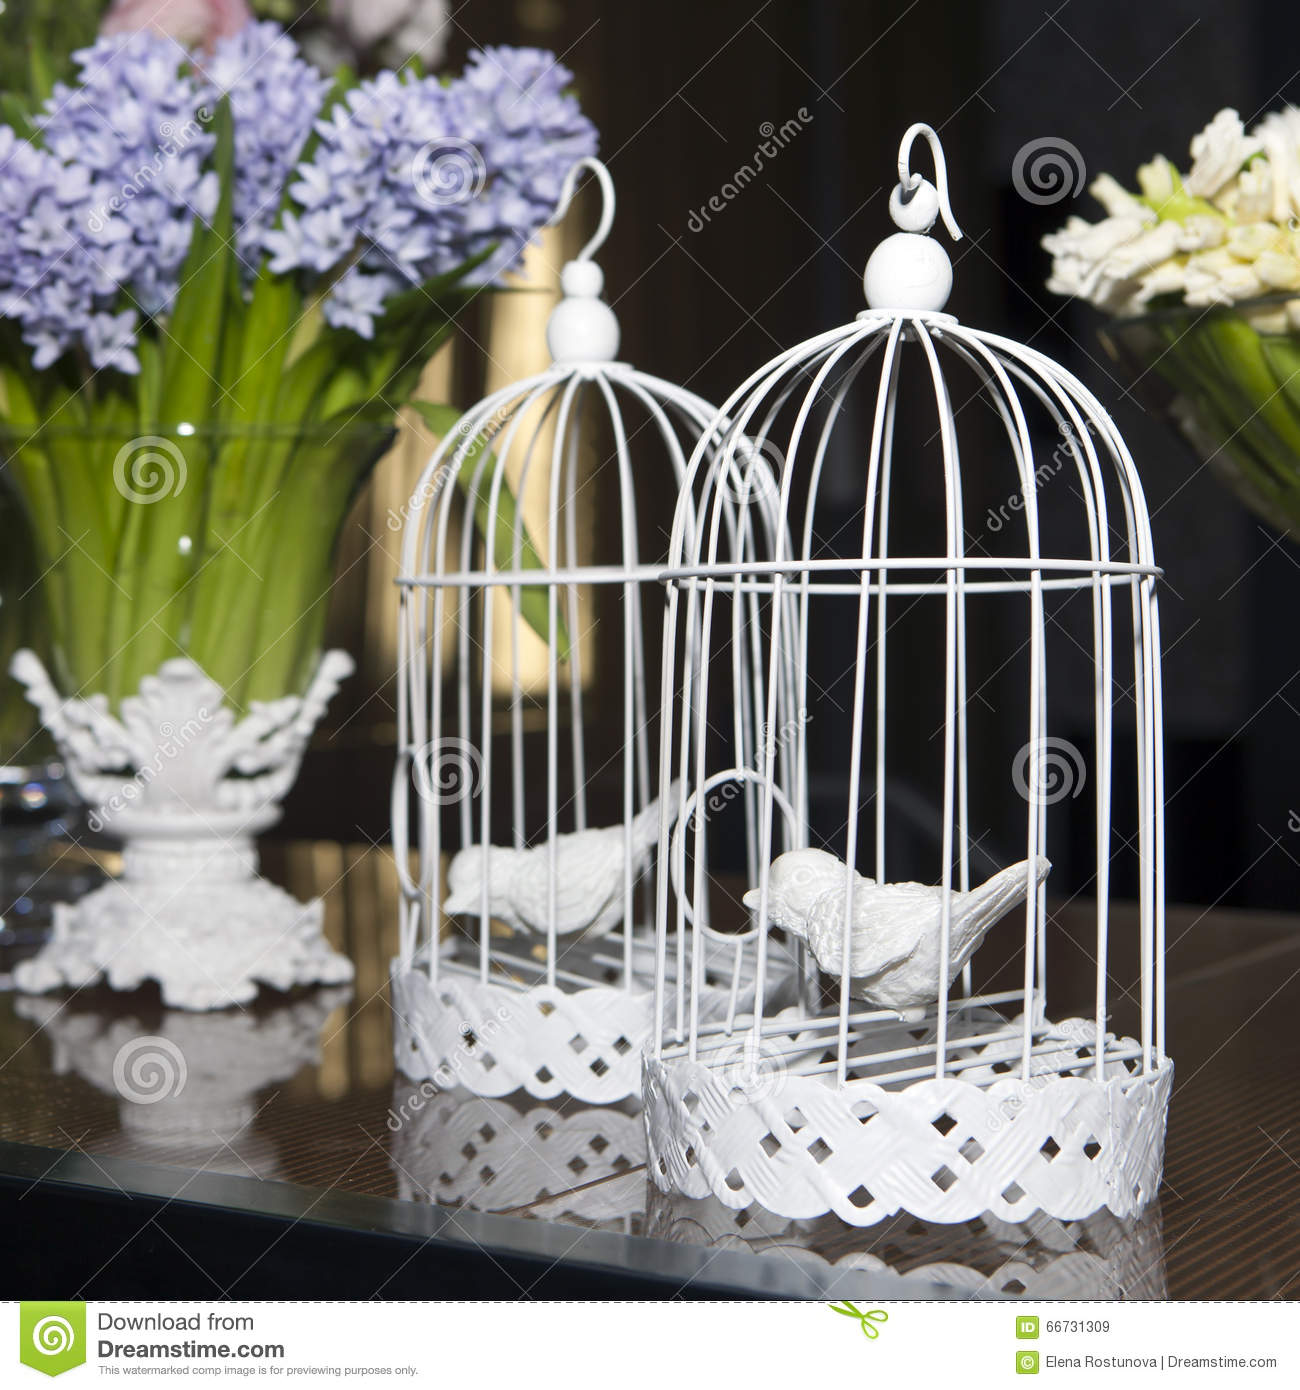 d coration de p ques avec la cage oiseaux fleurs photo stock image 66731309. Black Bedroom Furniture Sets. Home Design Ideas